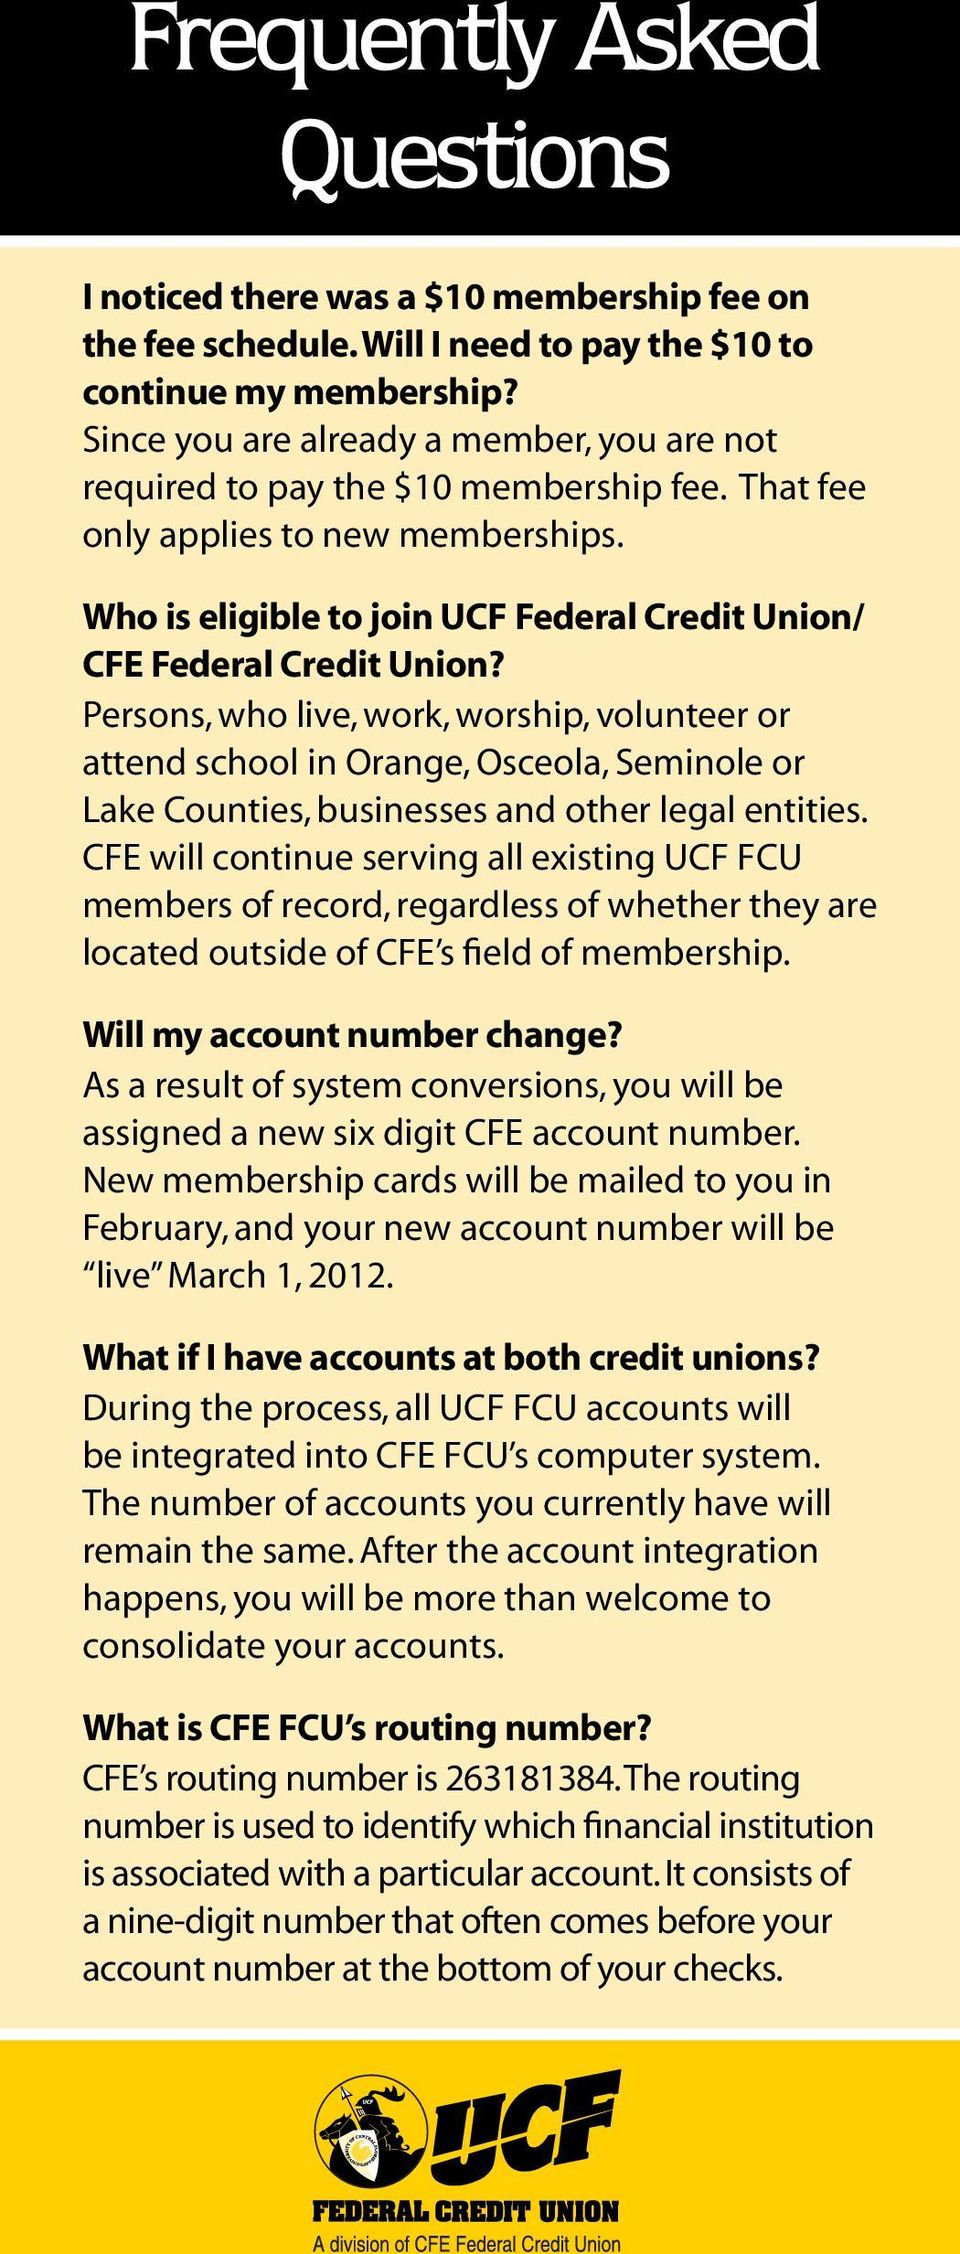 Who is eligible to join UCF Federal Credit Union/ CFE Federal Credit Union?